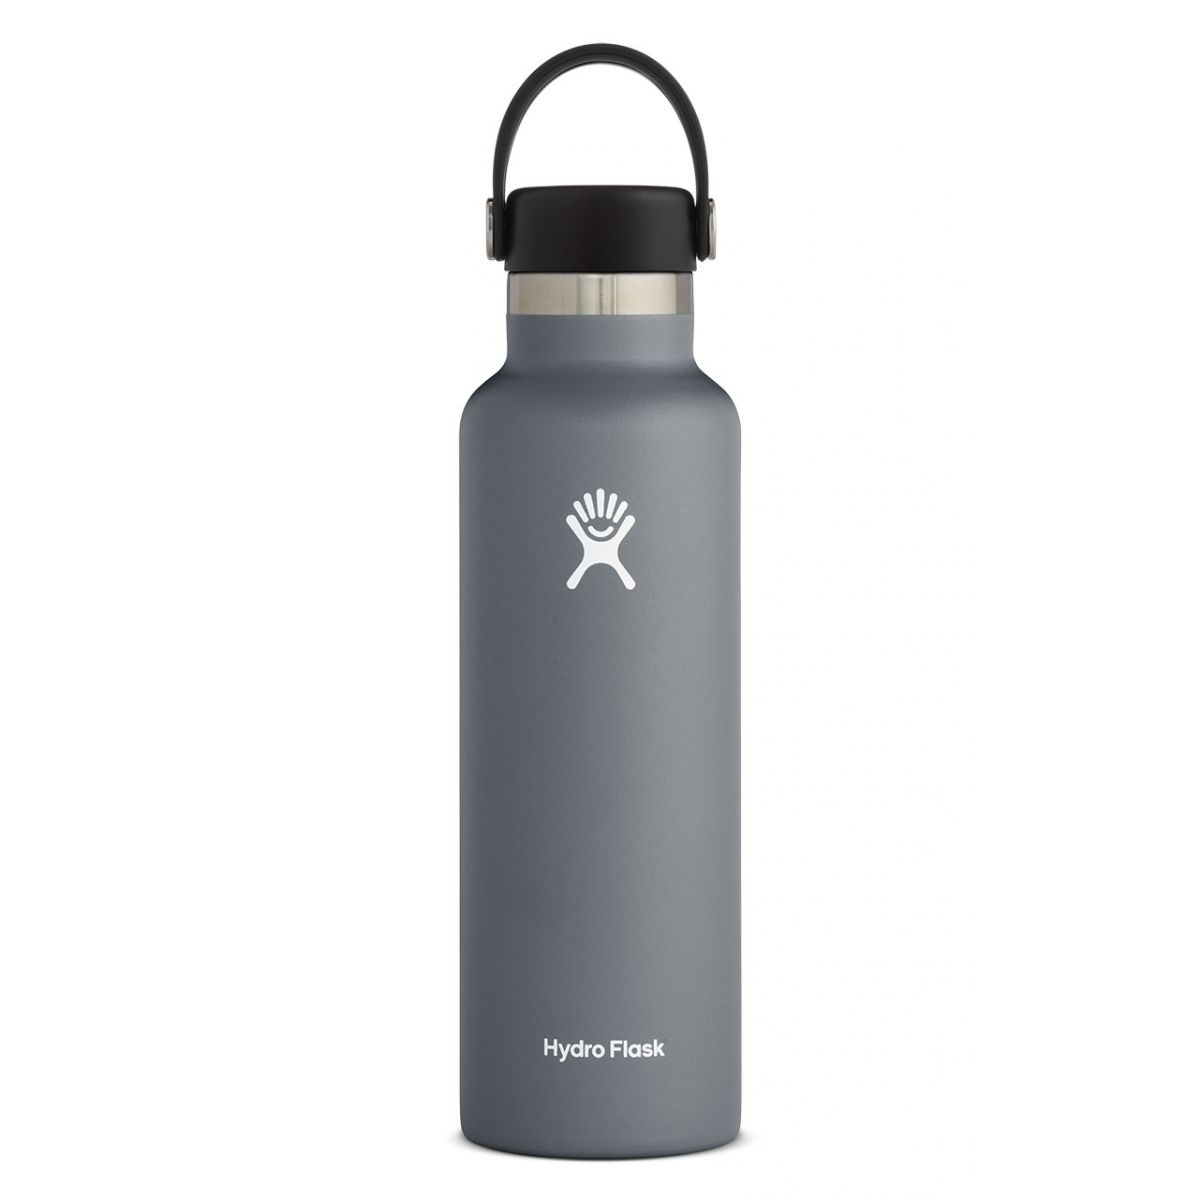 Image For Hydroflask Insulated Water Bottle, Stone